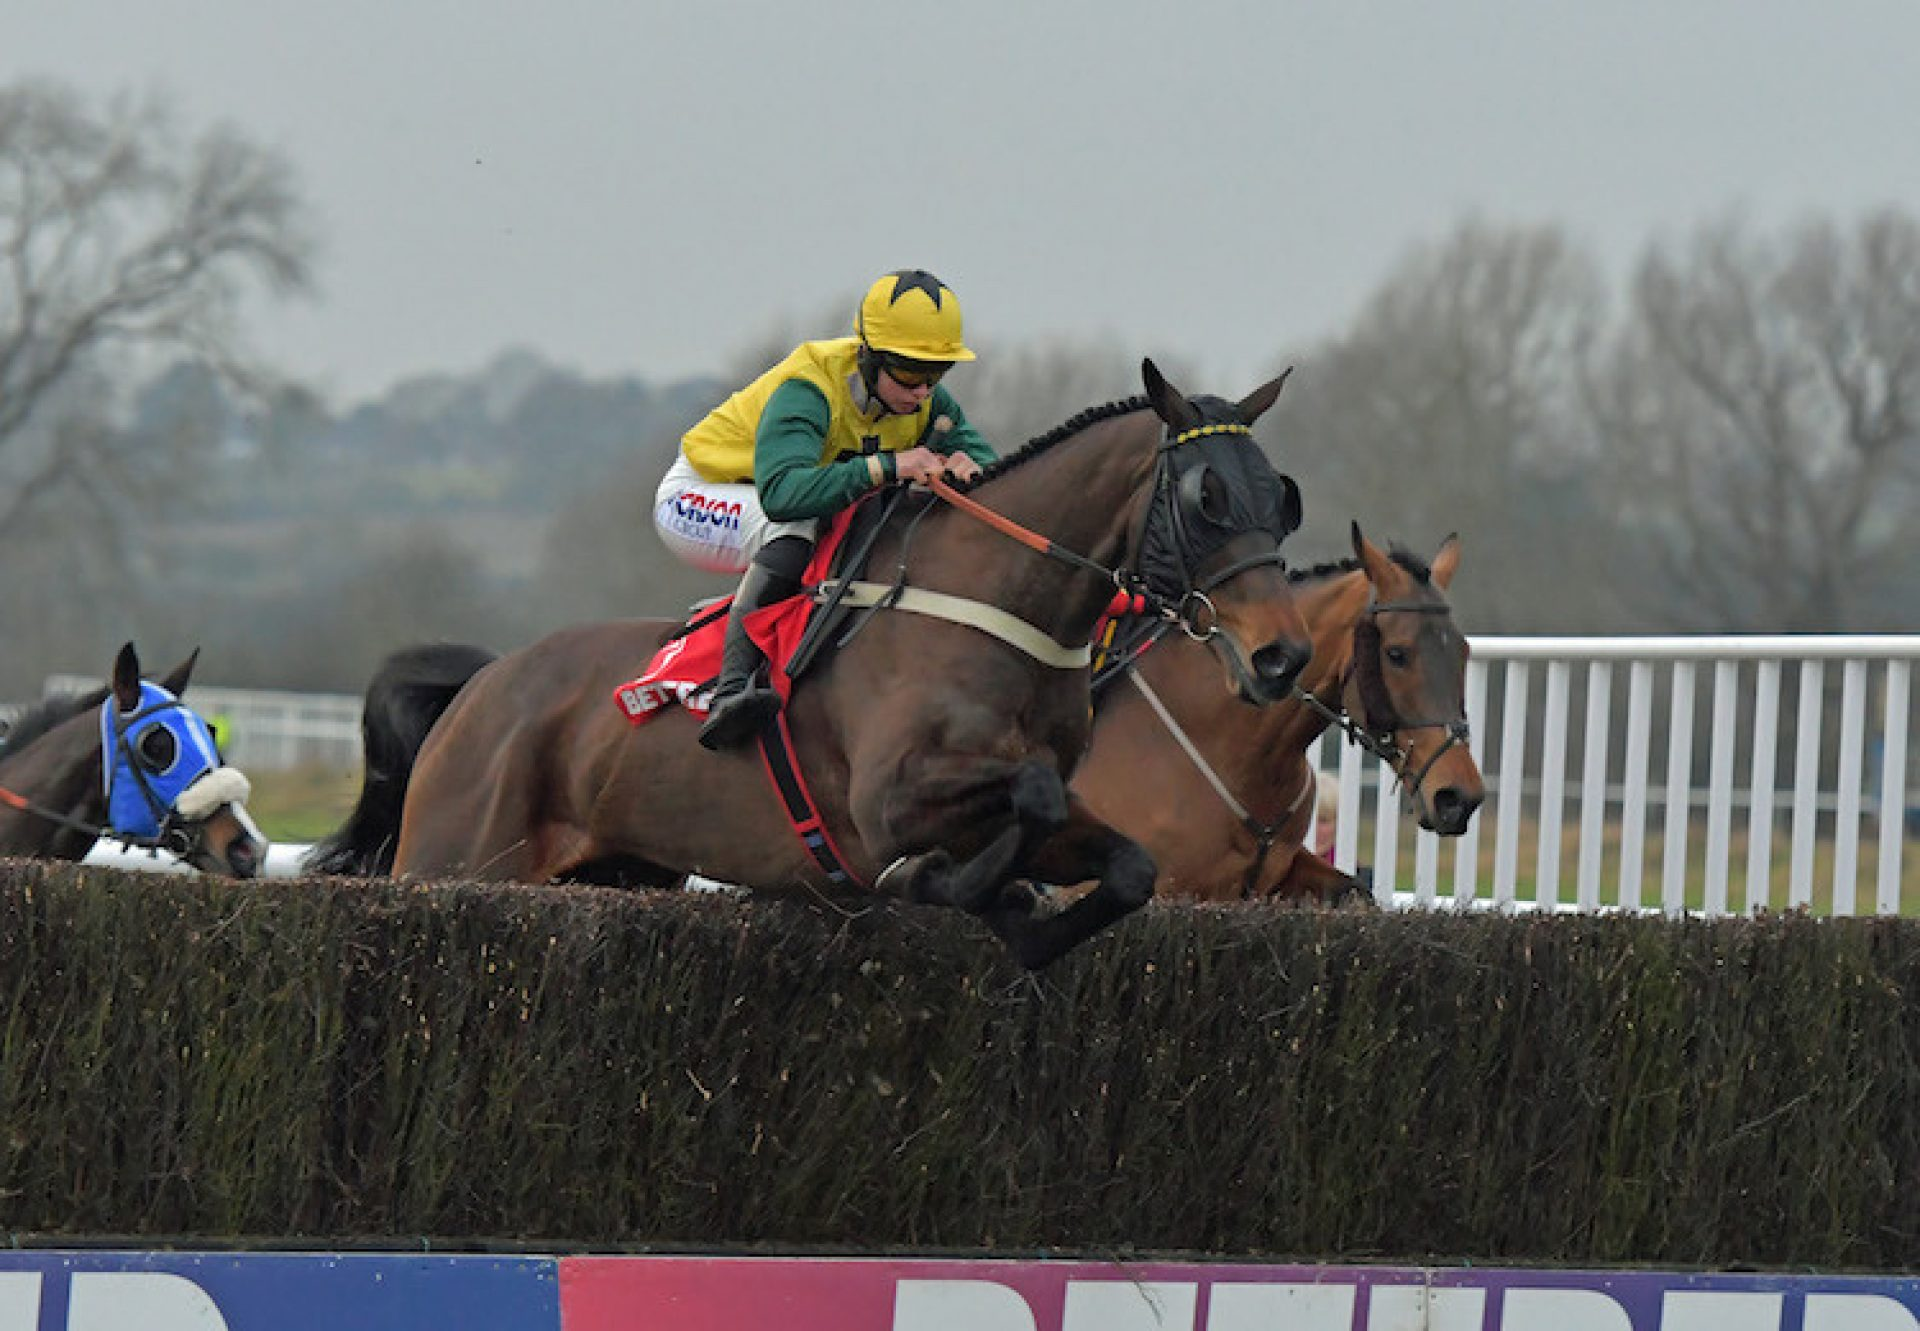 Milansbar (Milan) winning the G3 Classic Chase at Warwick